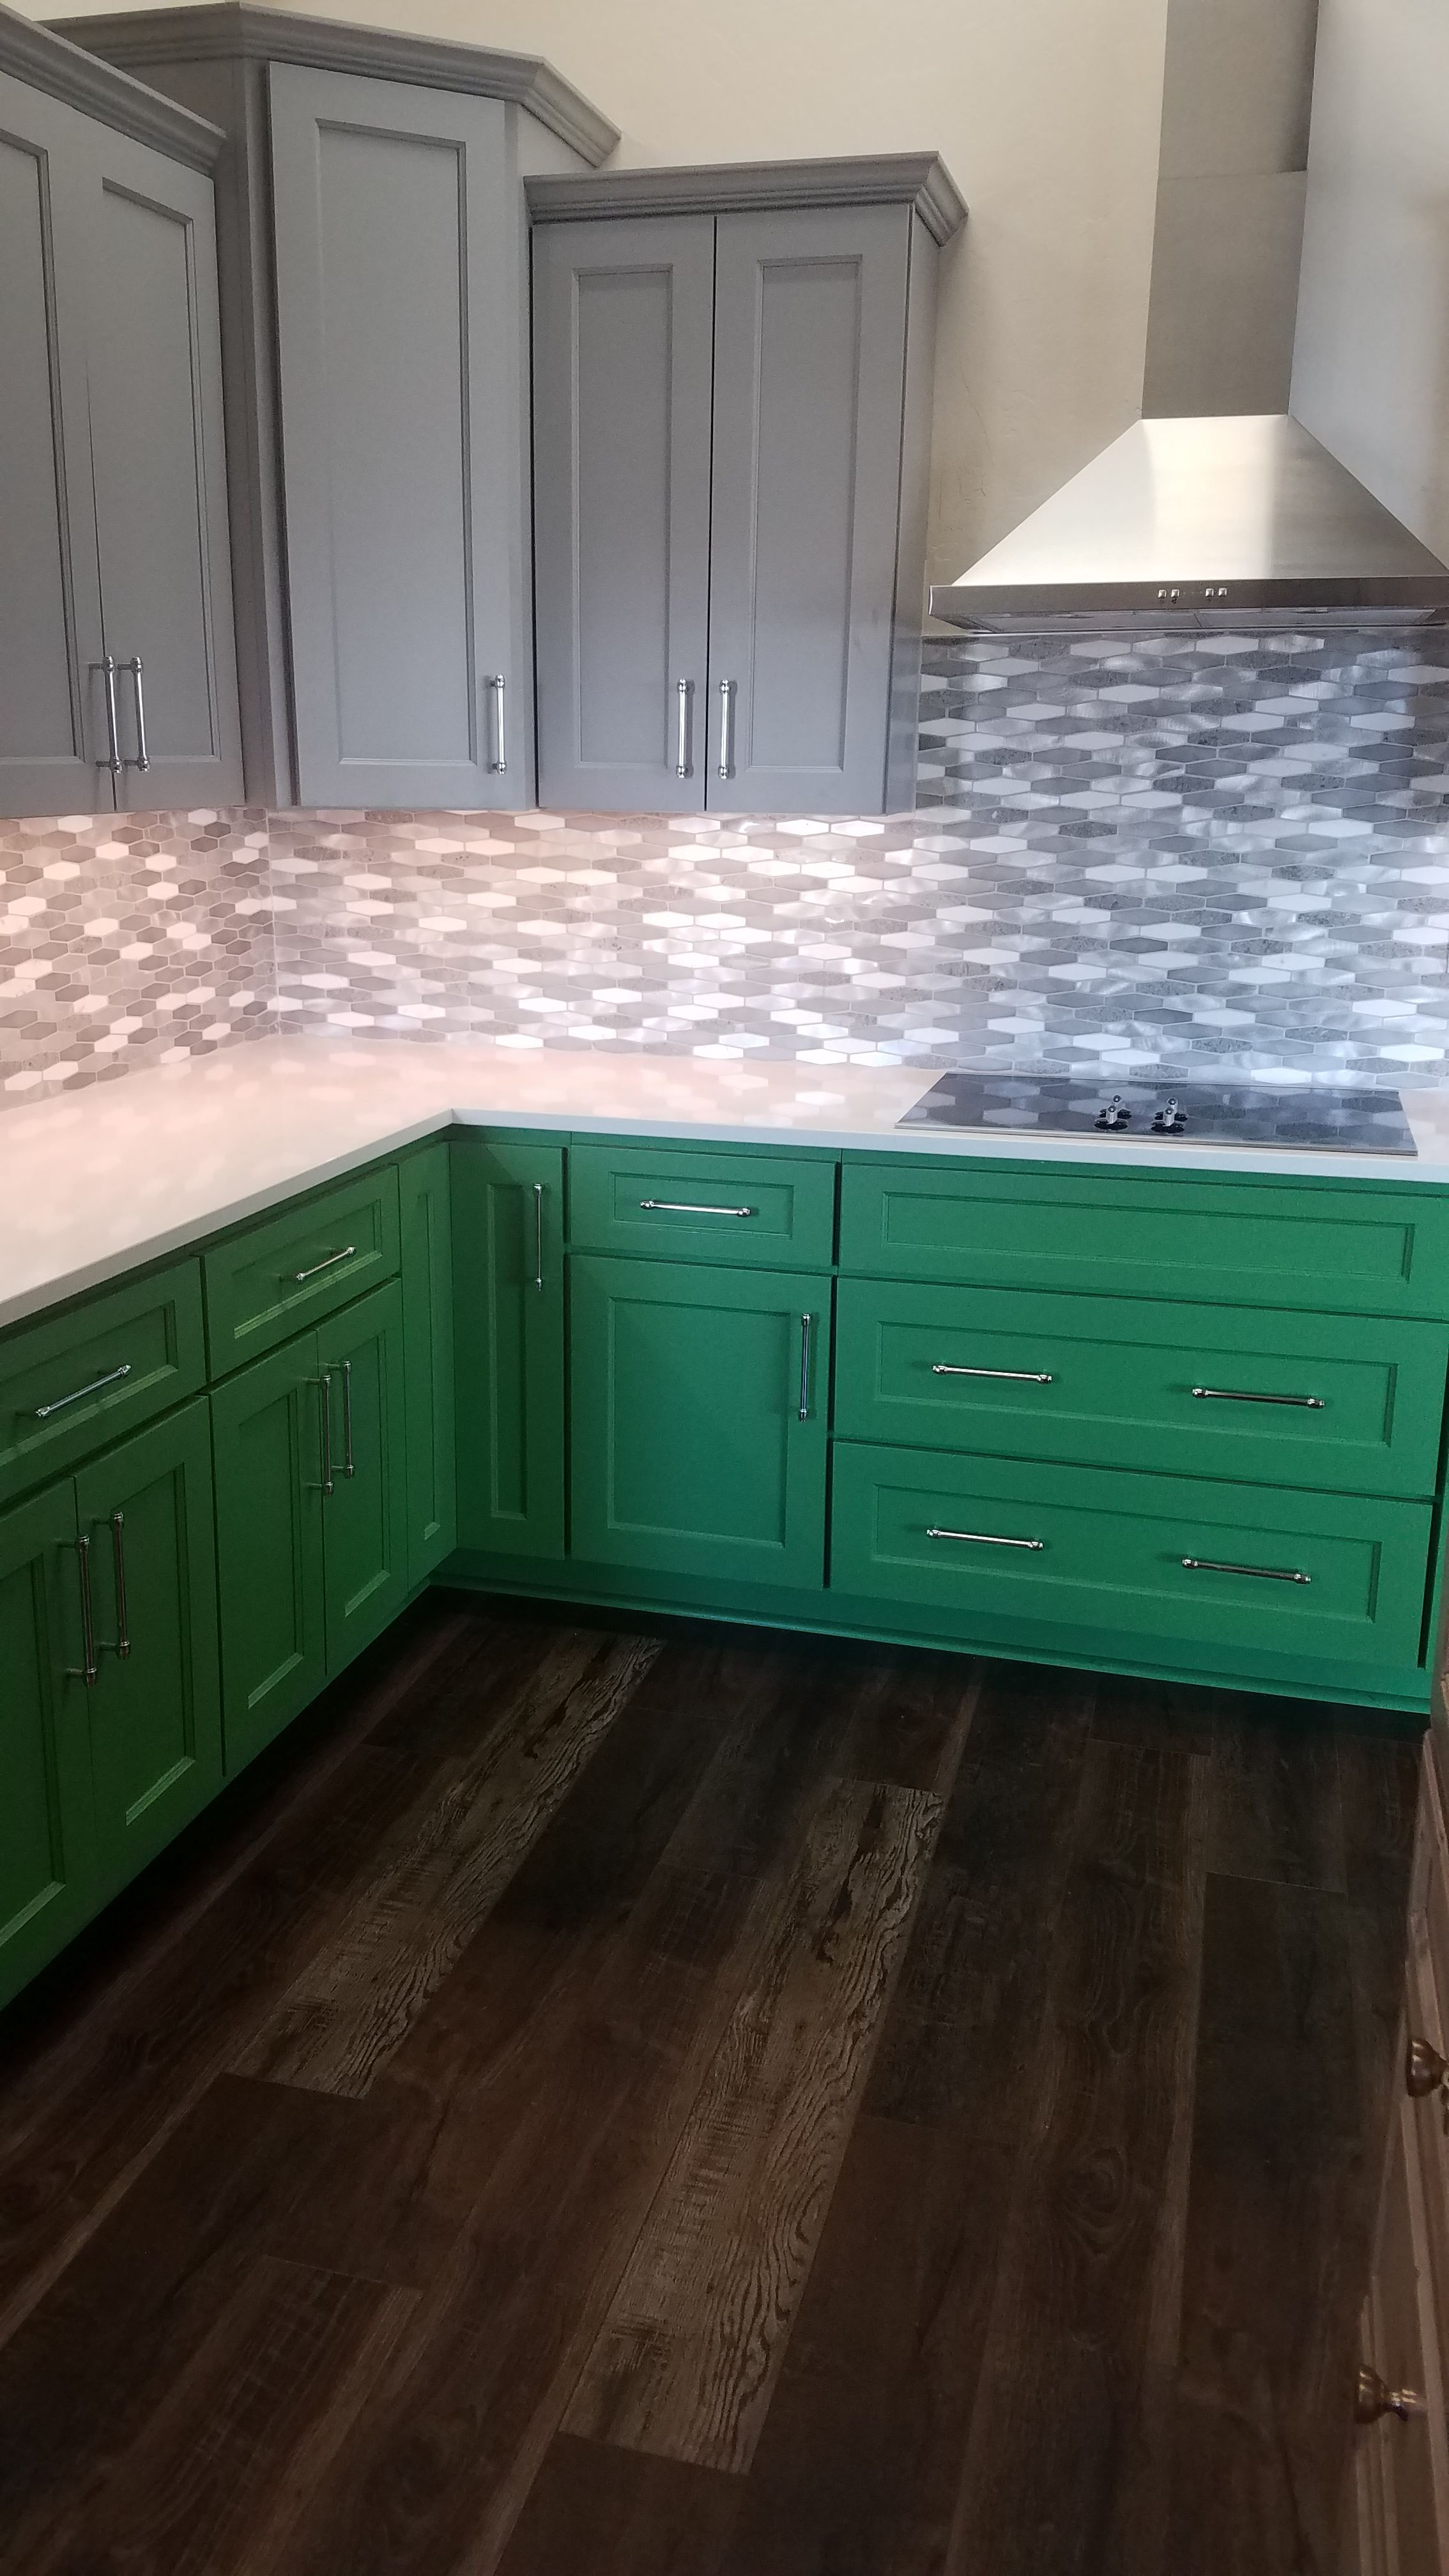 Custom Talipot Palm By Sherwin Williams Painted Lower Cabinets Give A Pop Of Color To The C Kitchen Cabinets Rta Kitchen Cabinets Inexpensive Kitchen Cabinets